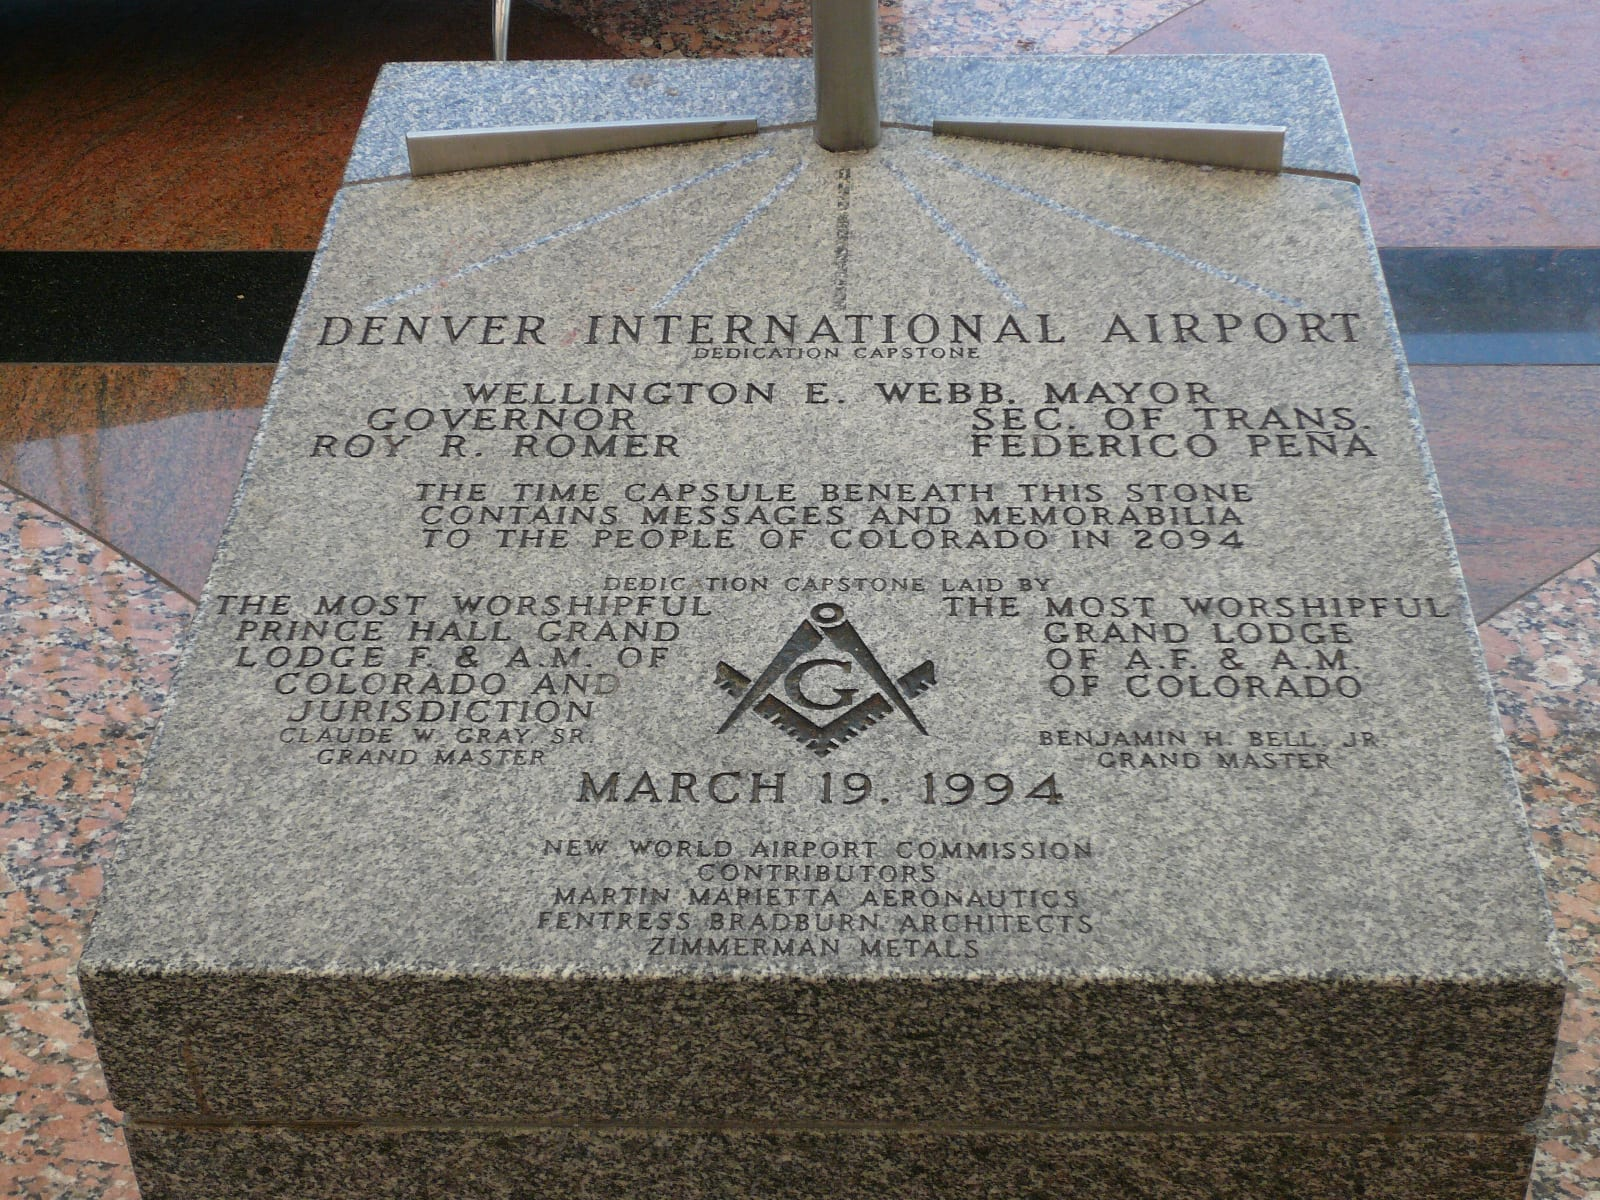 DIA Conspiracy Theories Denver International Airport Dedication Capstone